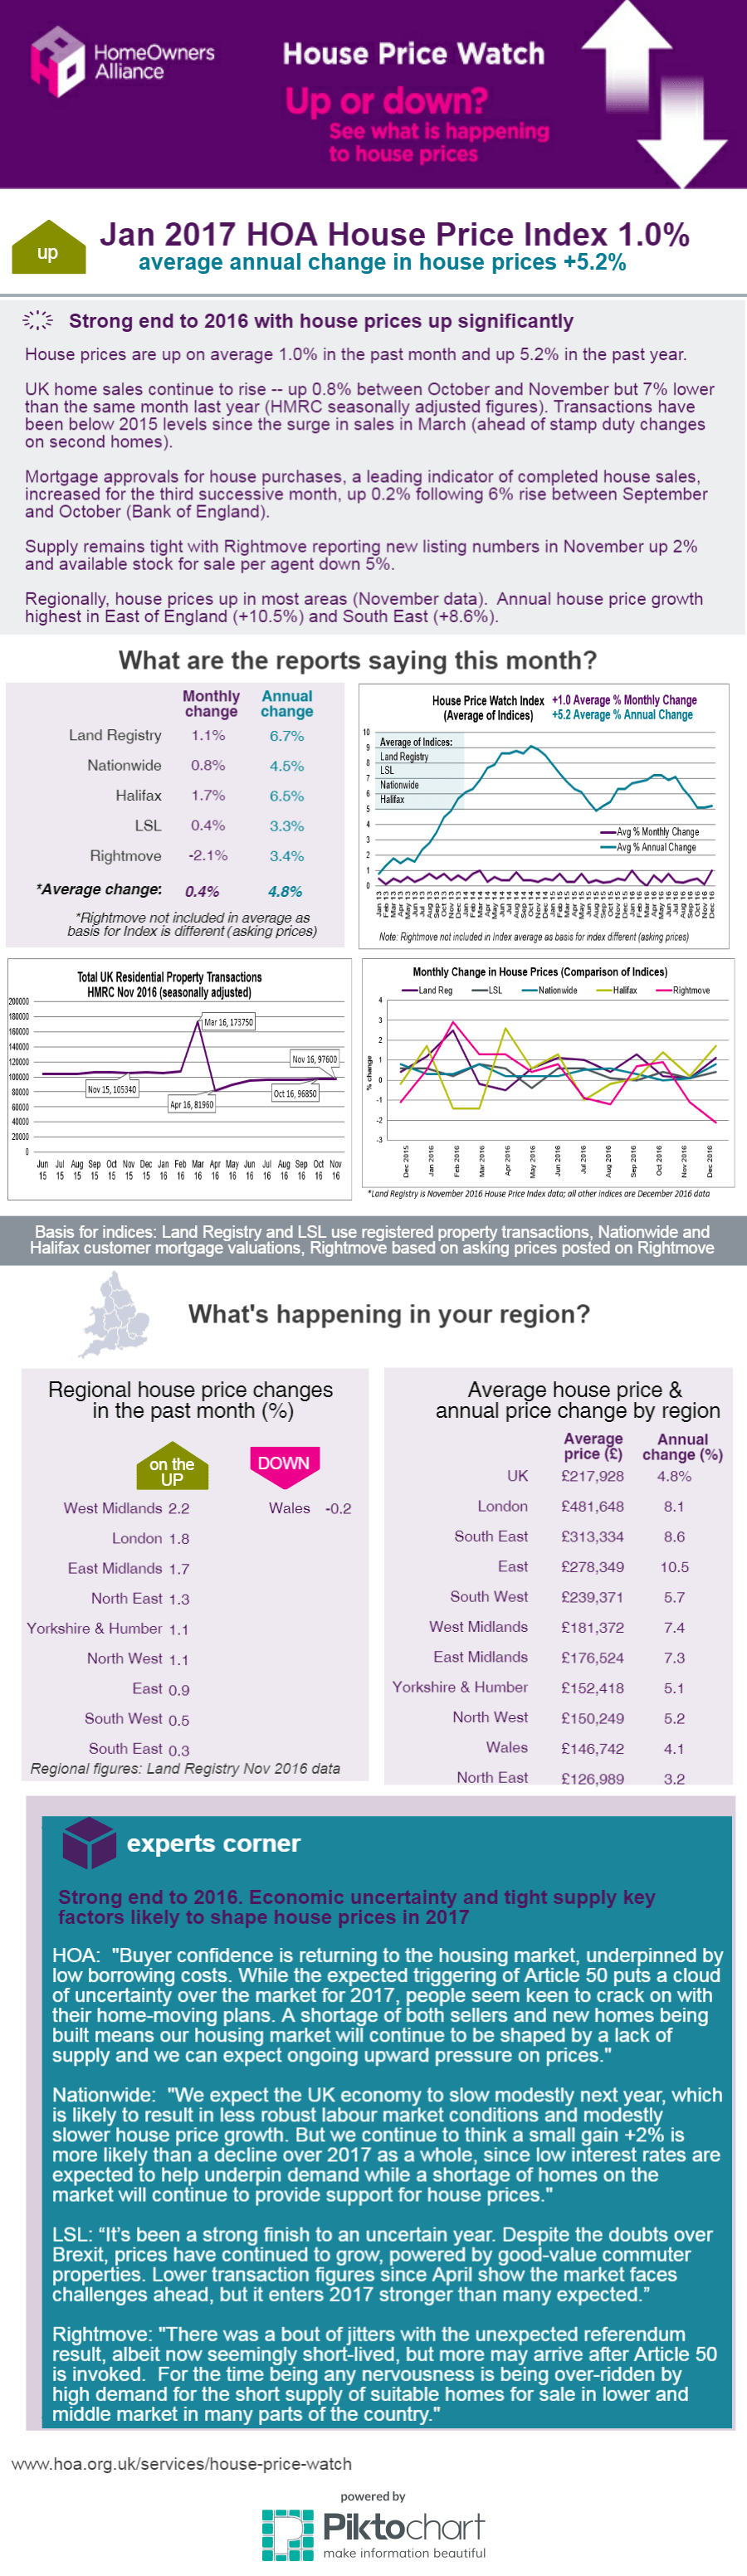 Jan 2017 House Price Watch Infographic